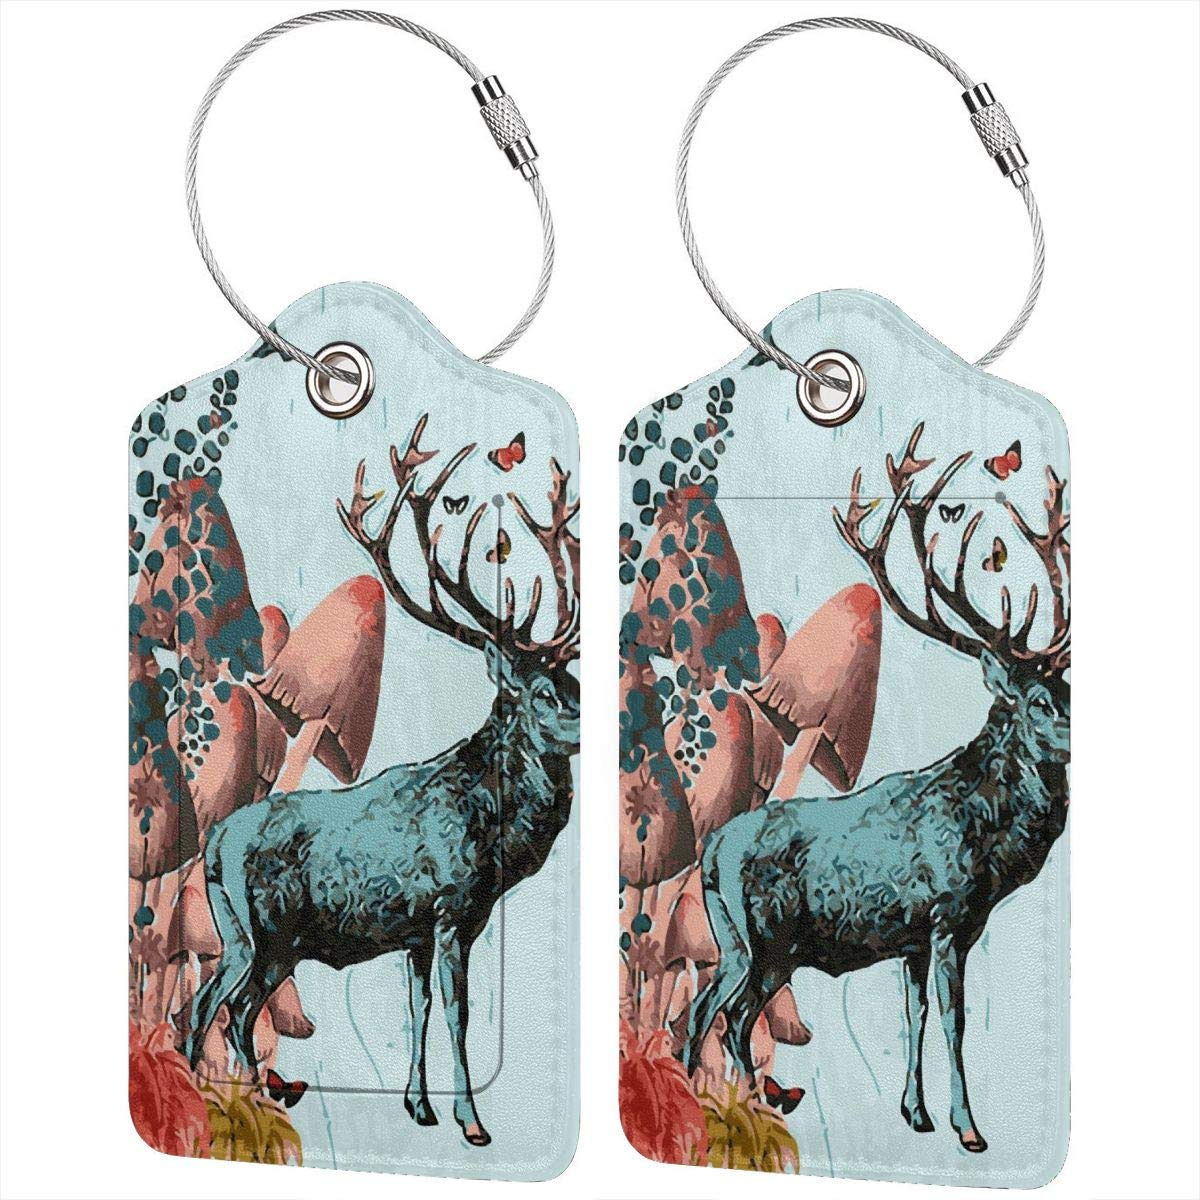 Mushroom Deer Luggage Tag Label Travel Bag Label With Privacy Cover Luggage Tag Leather Personalized Suitcase Tag Travel Accessories